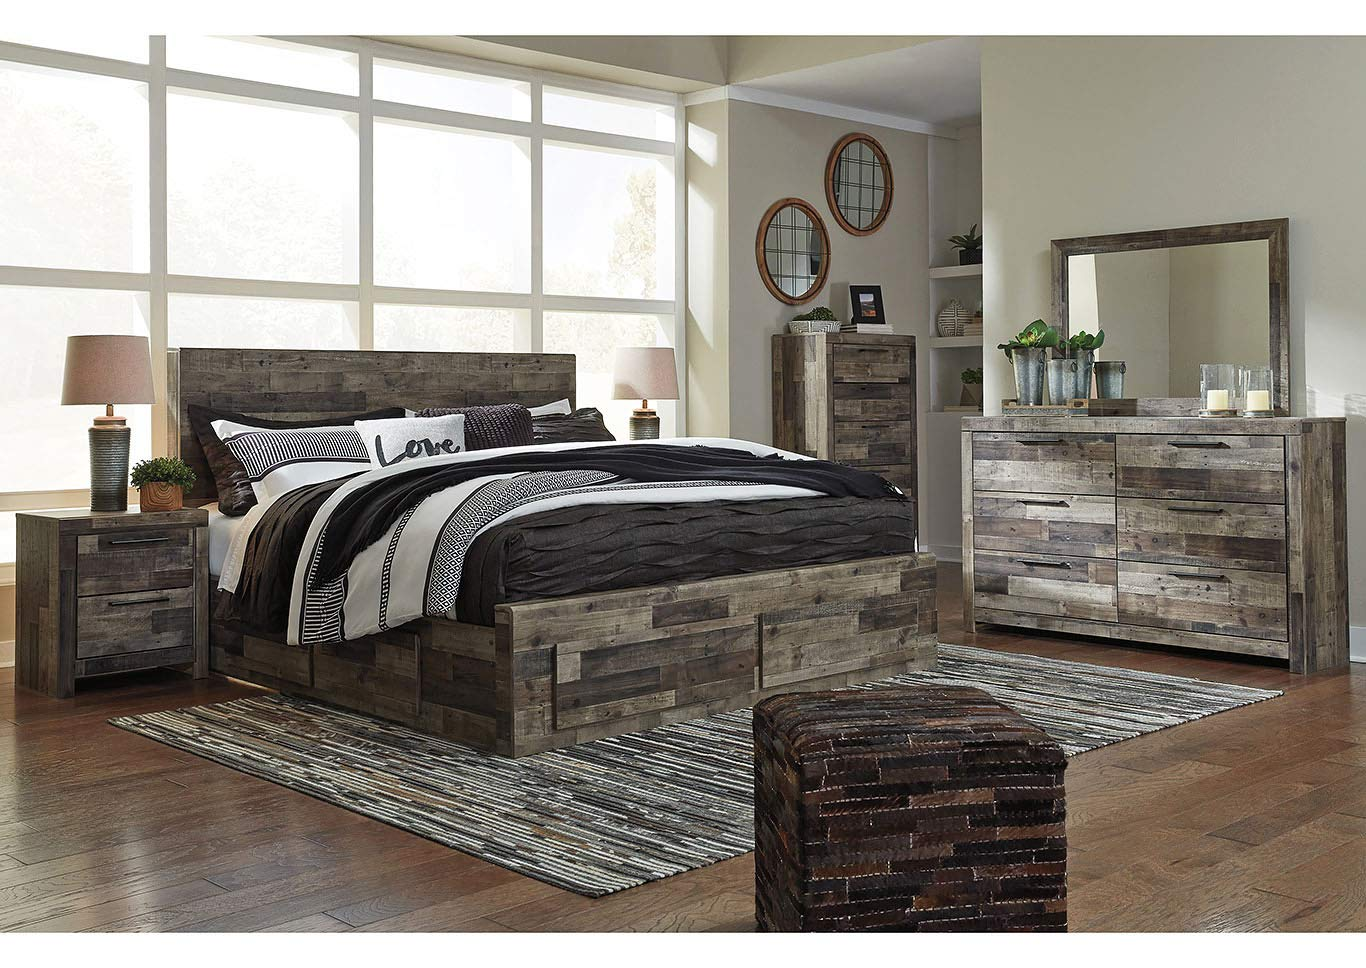 Amazon.com: Amazing Buys Derekson Bedroom Set by Ashley Furniture ...